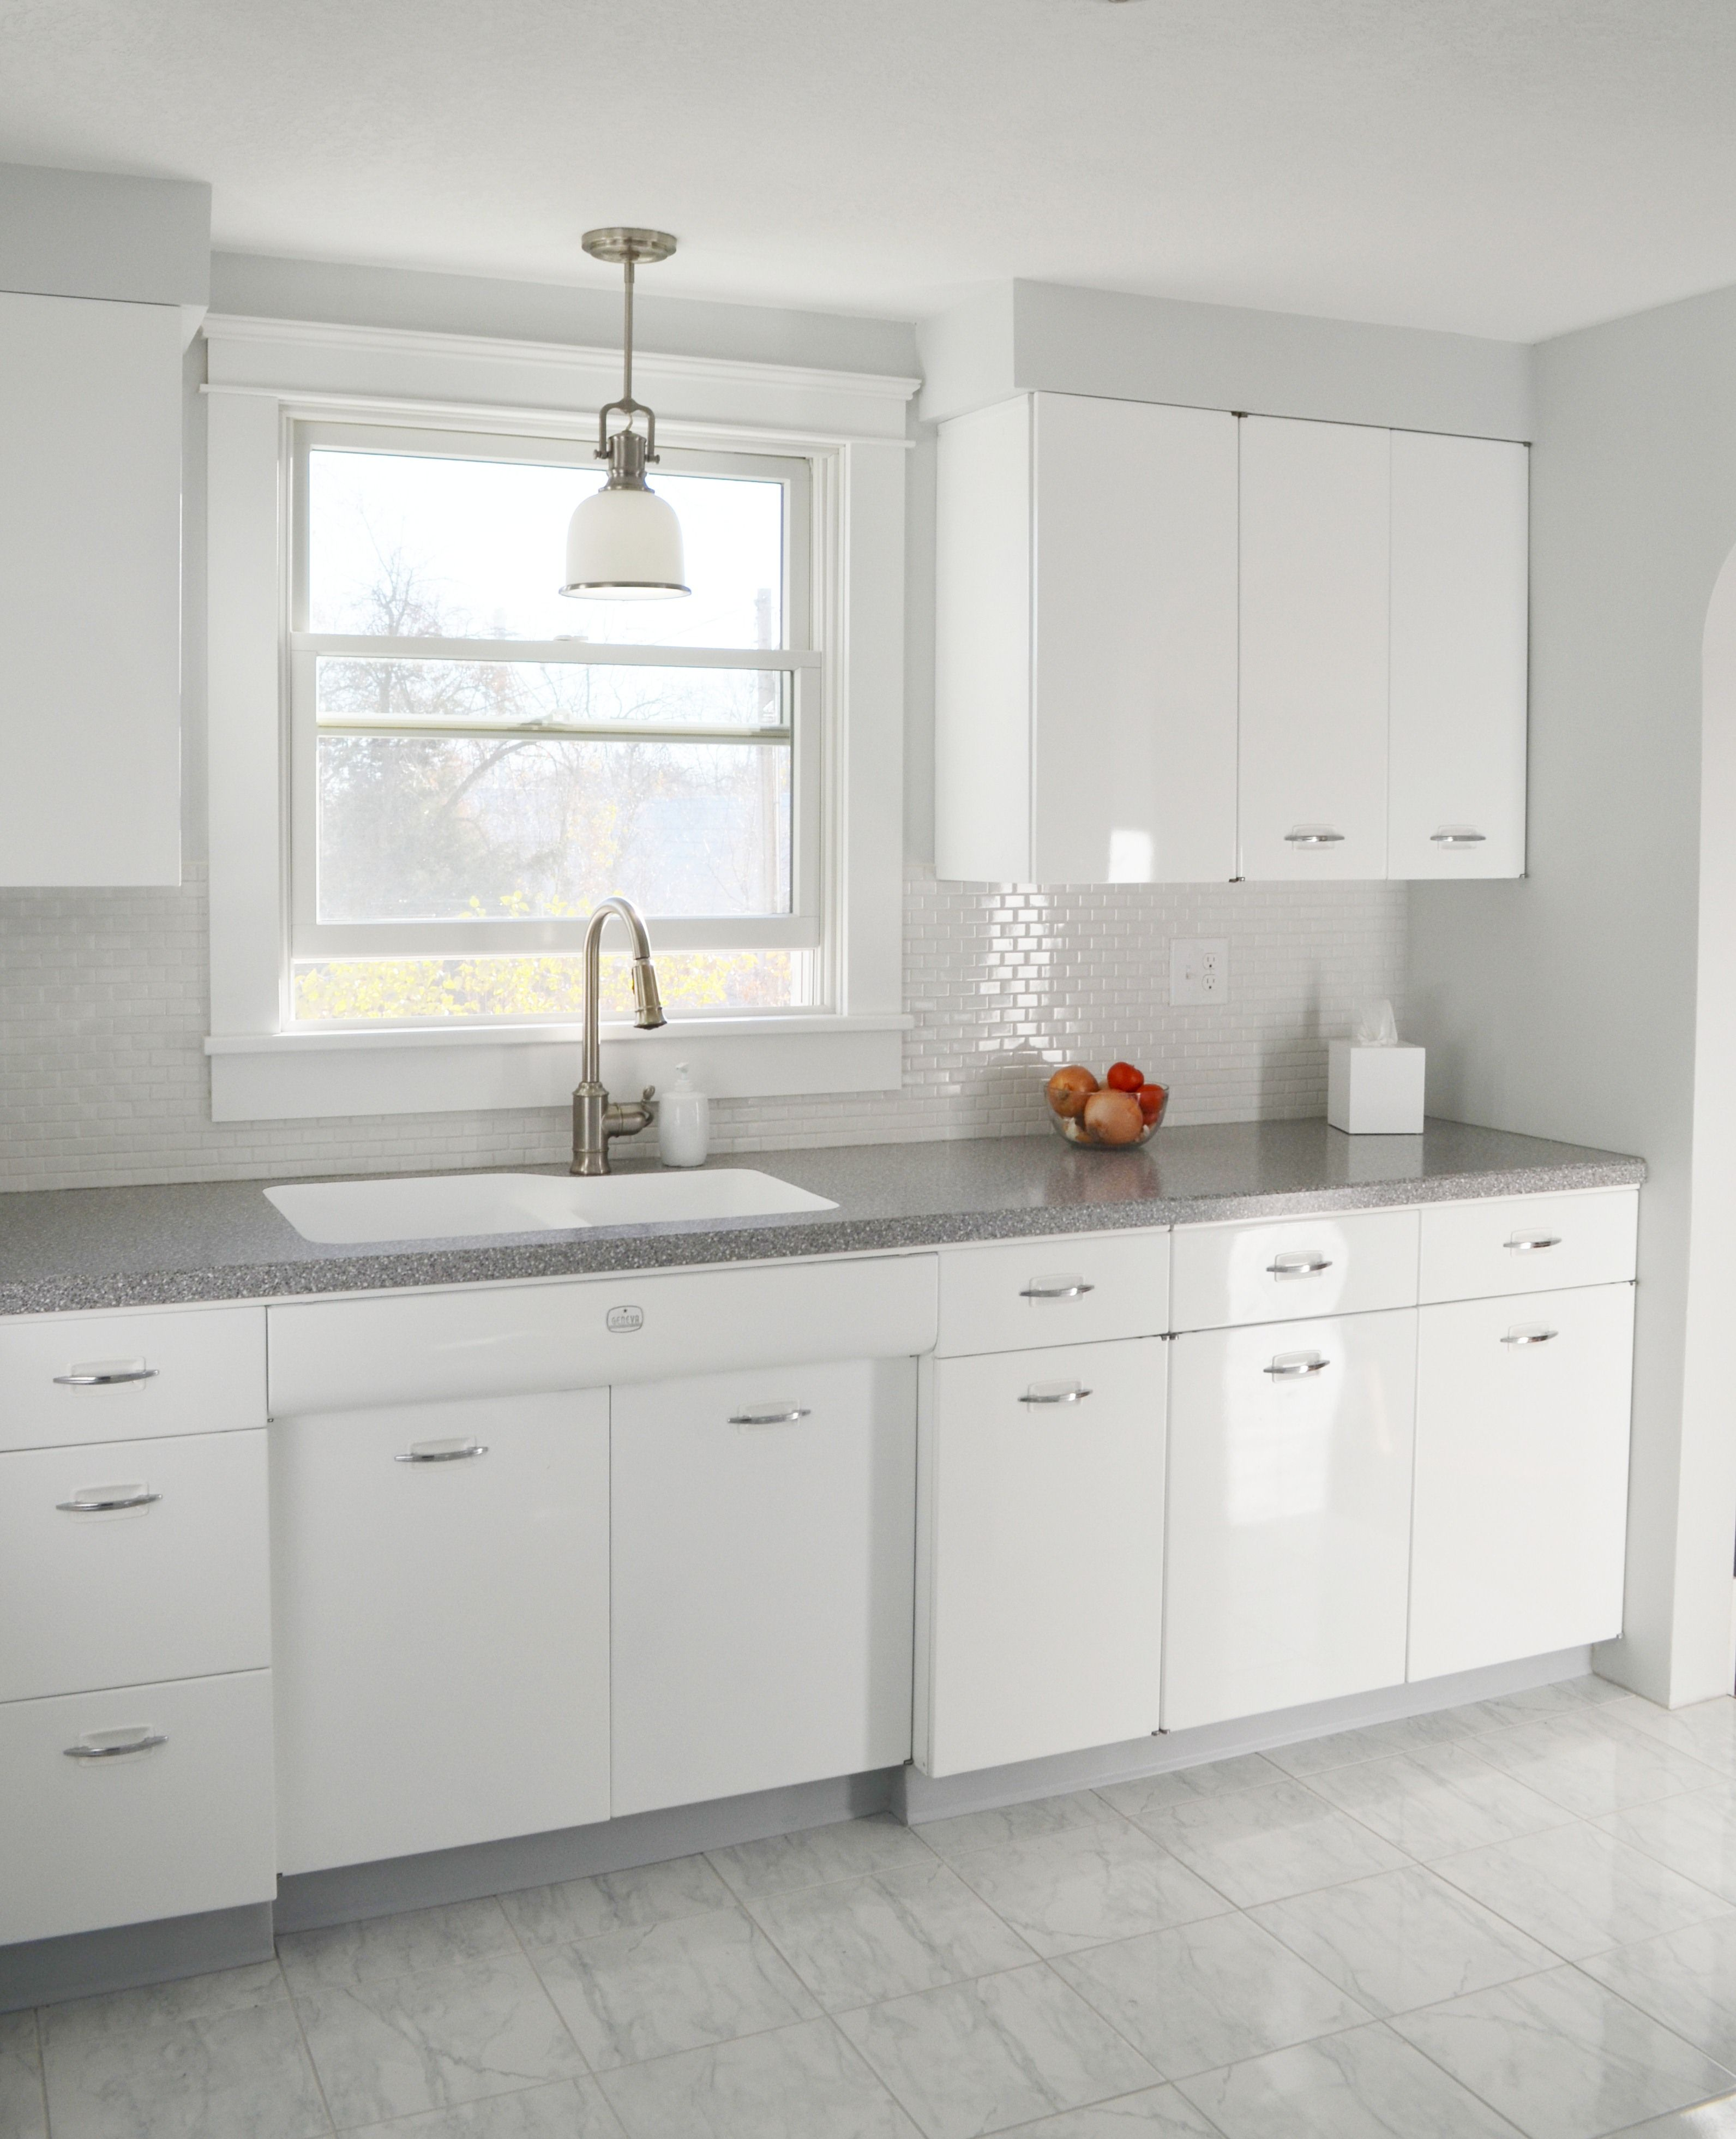 Hackel Construction Inc Remodeled This S Kitchen By Having - 1950's kitchen light fixtures